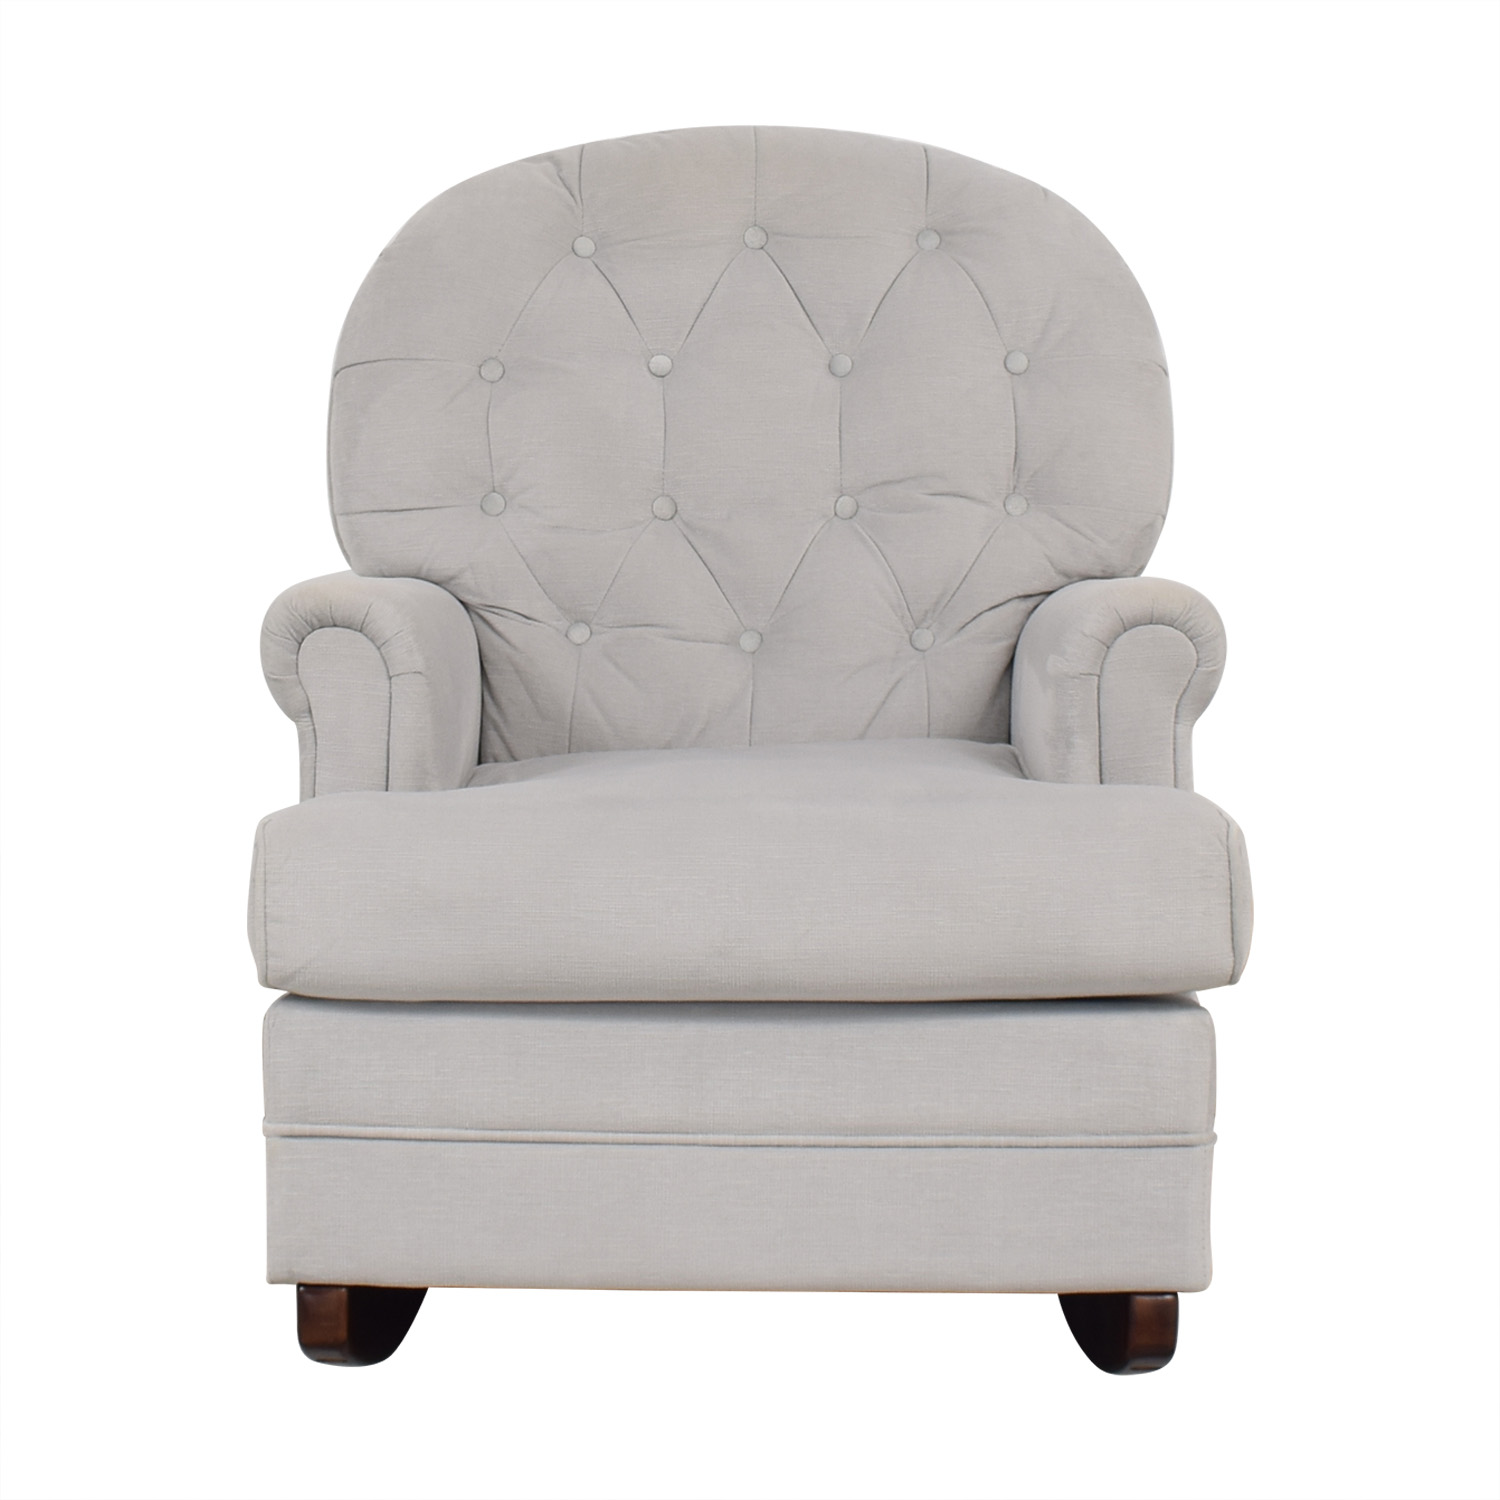 buy Dorel Baby Relax Brielle Tufted Rocker Chair Dorel Living Chairs